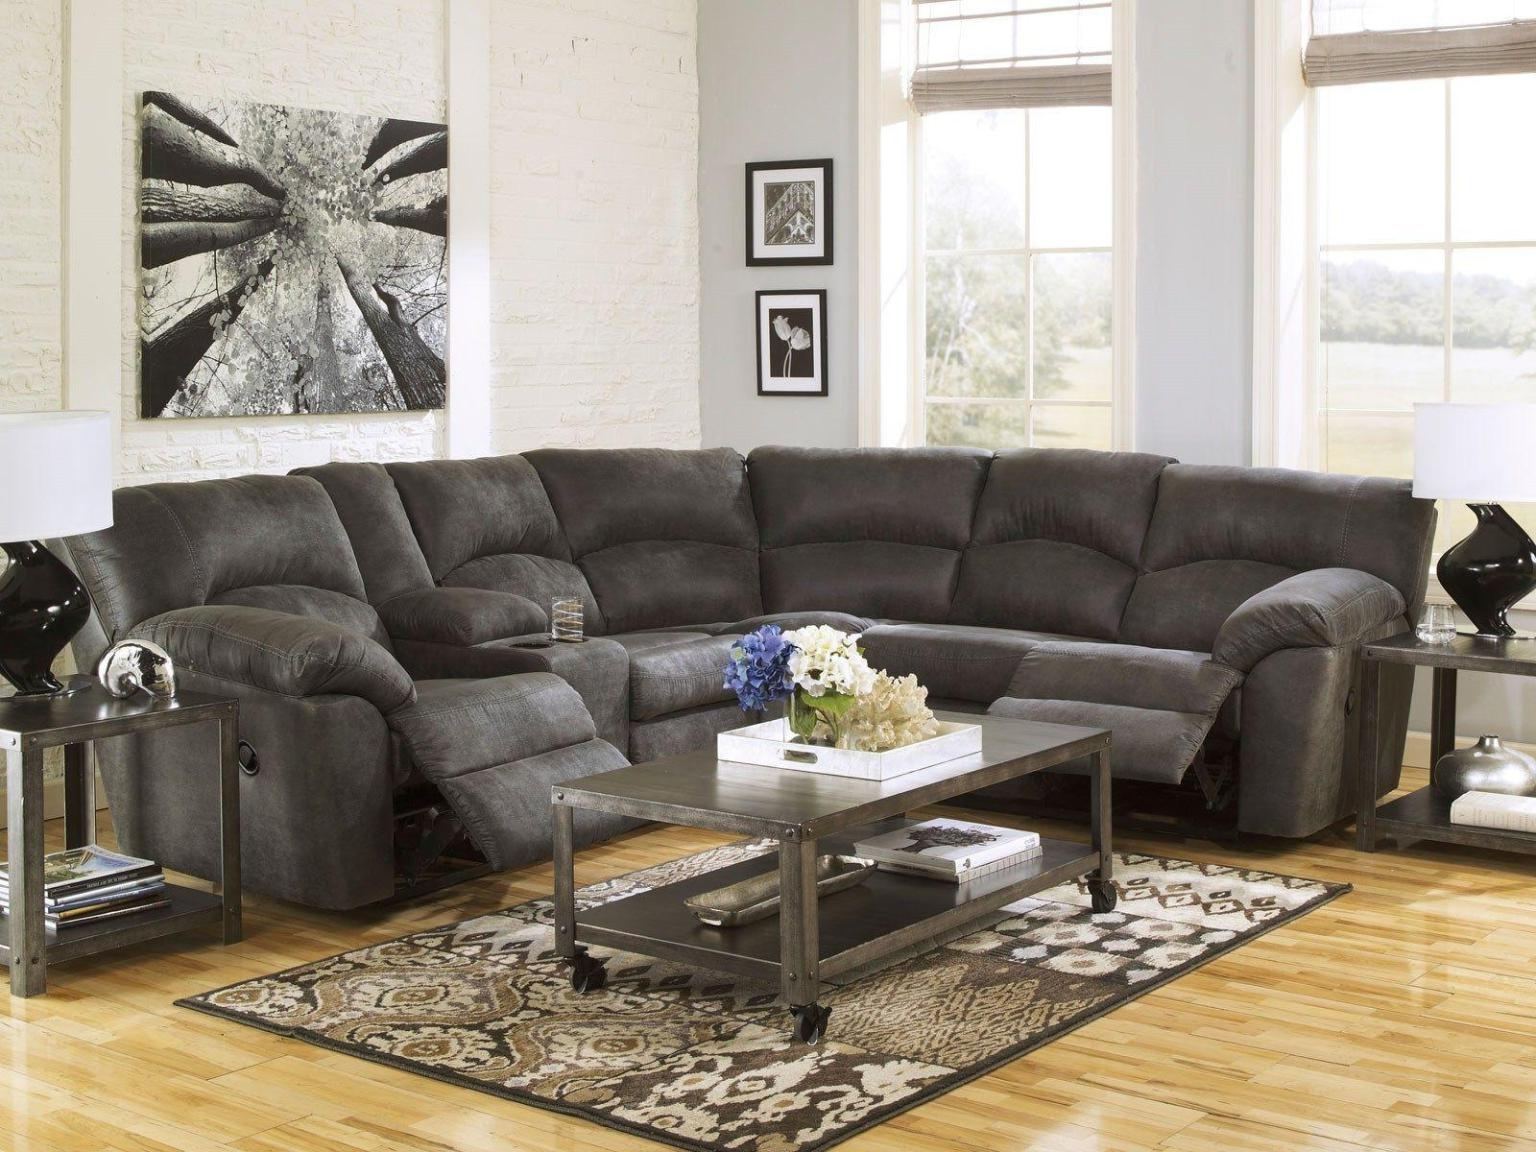 Widely Used Sectional Sofas With Recliners For Small Spaces : Doherty House In Sectional Sofas For Small Spaces With Recliners (View 15 of 15)